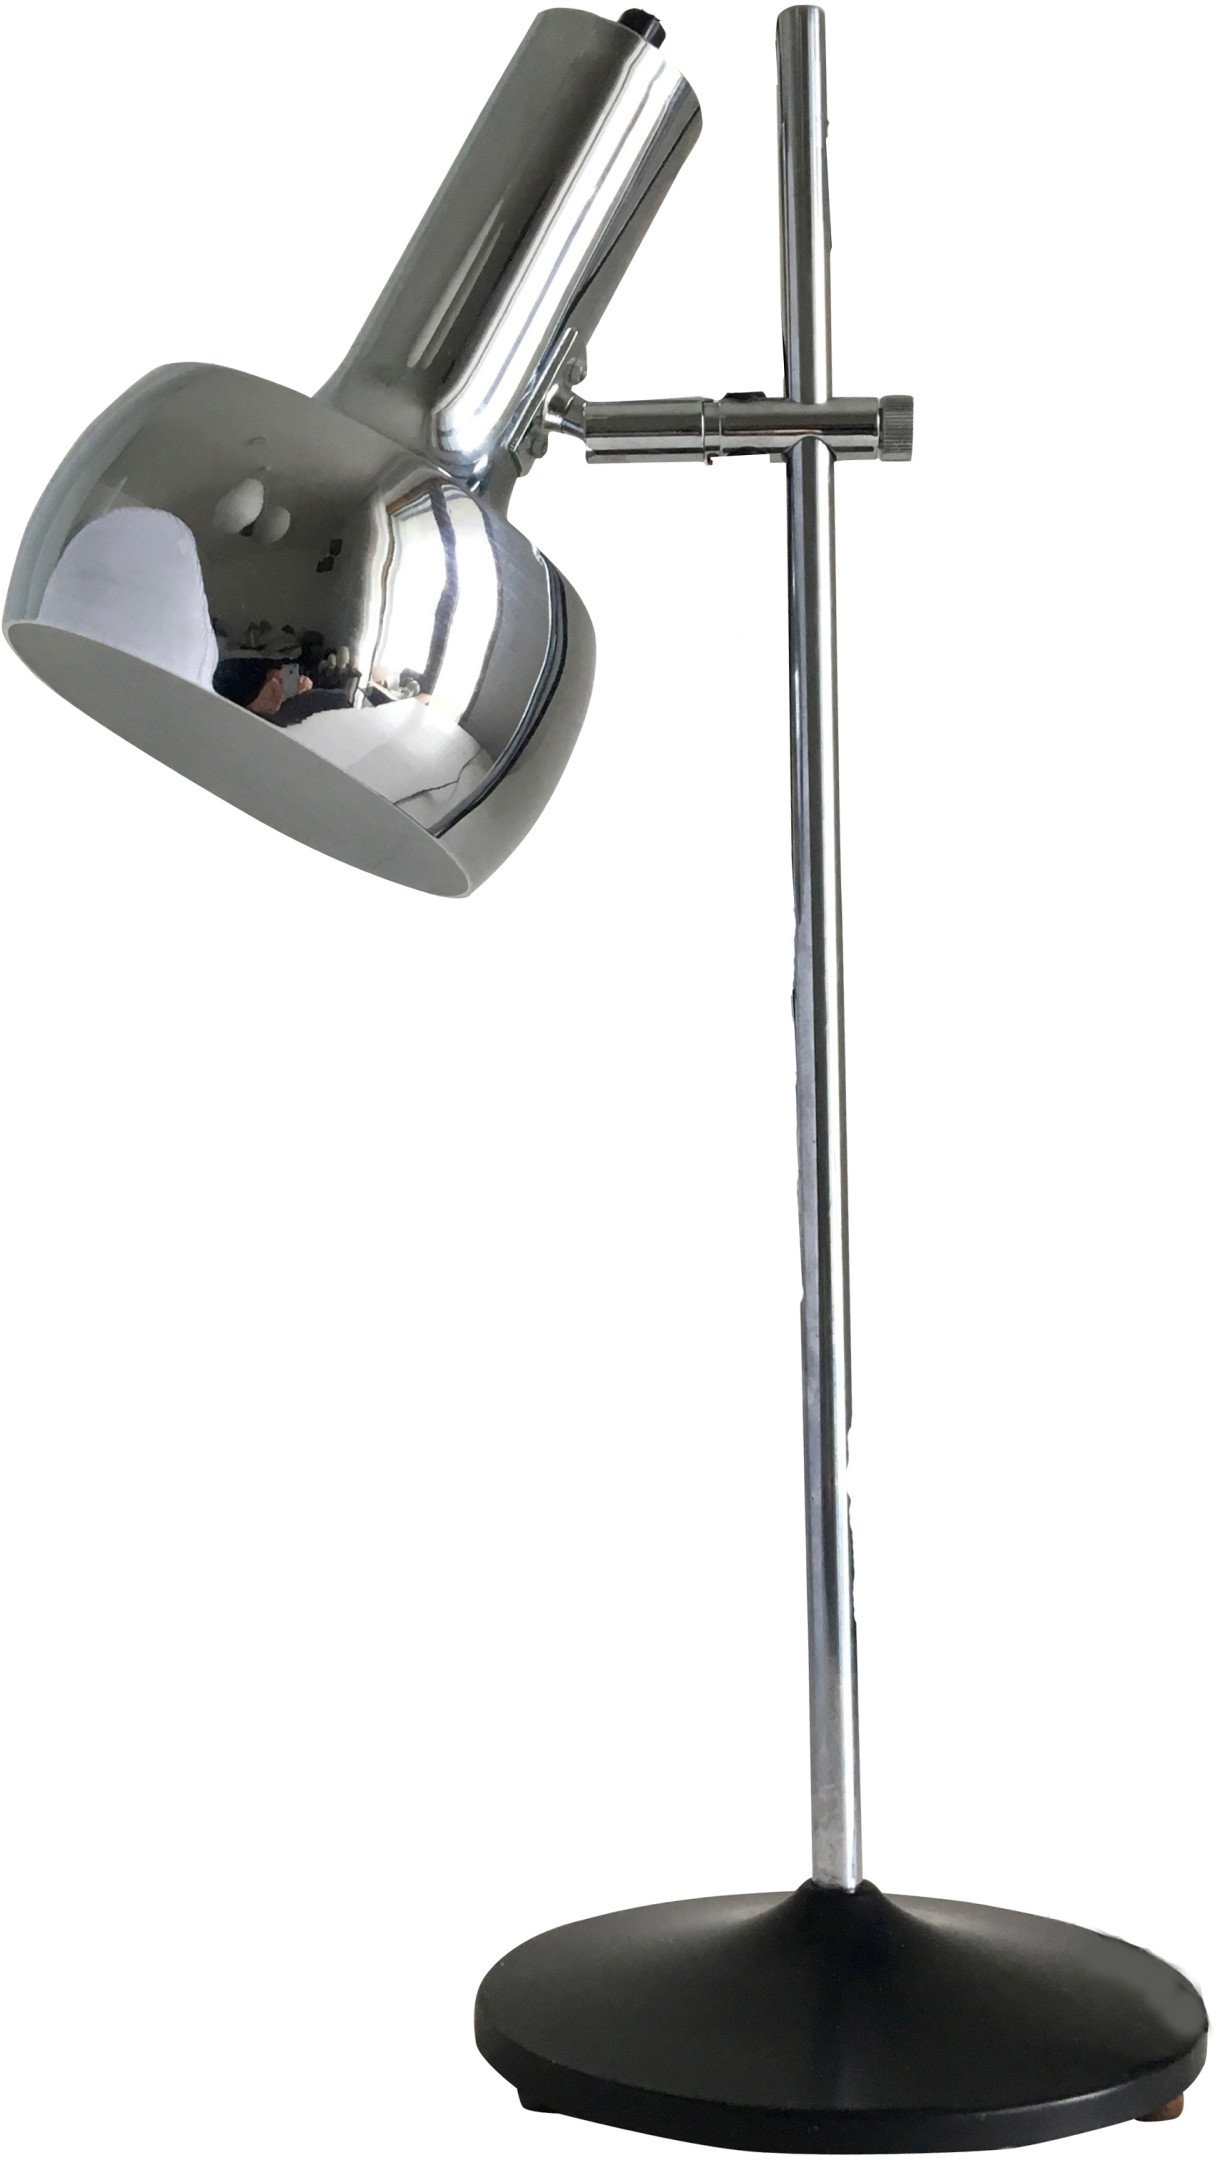 Desk Lamp, Swiss International, 1970s